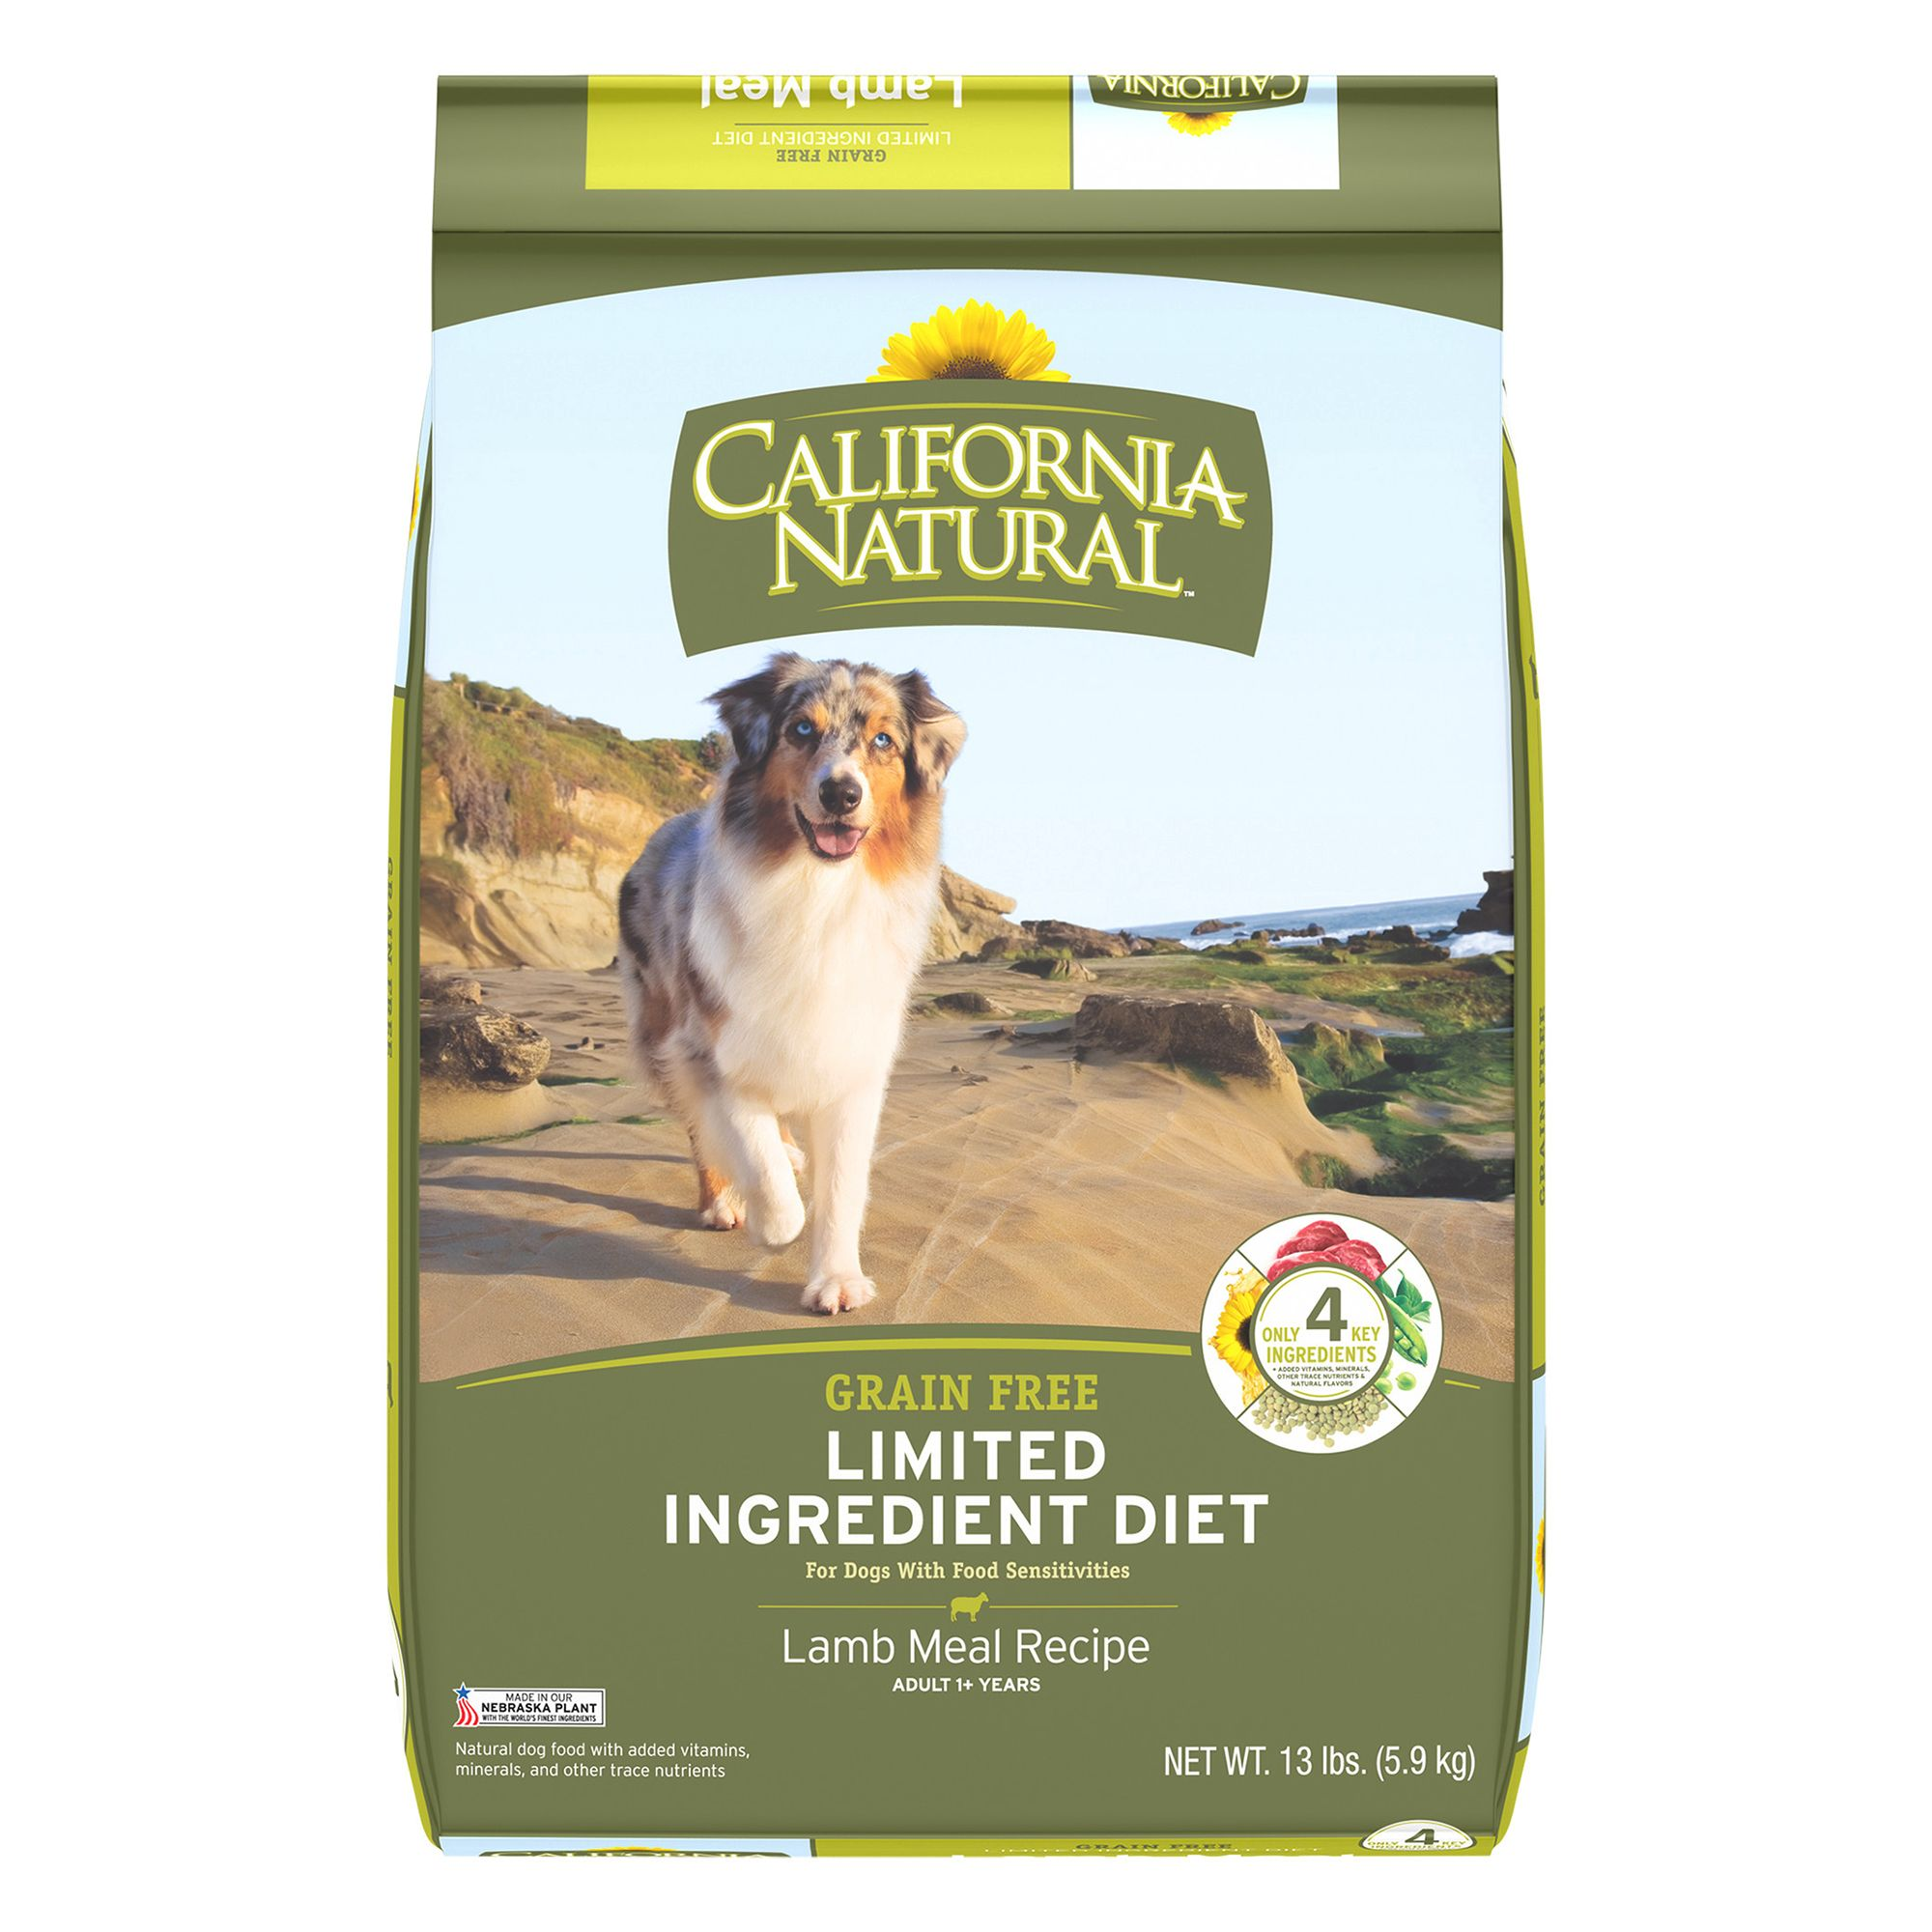 California Natural Limited Ingredient Diet Dog Food Natural Grain Free Lamb Meal Size 13 Lb